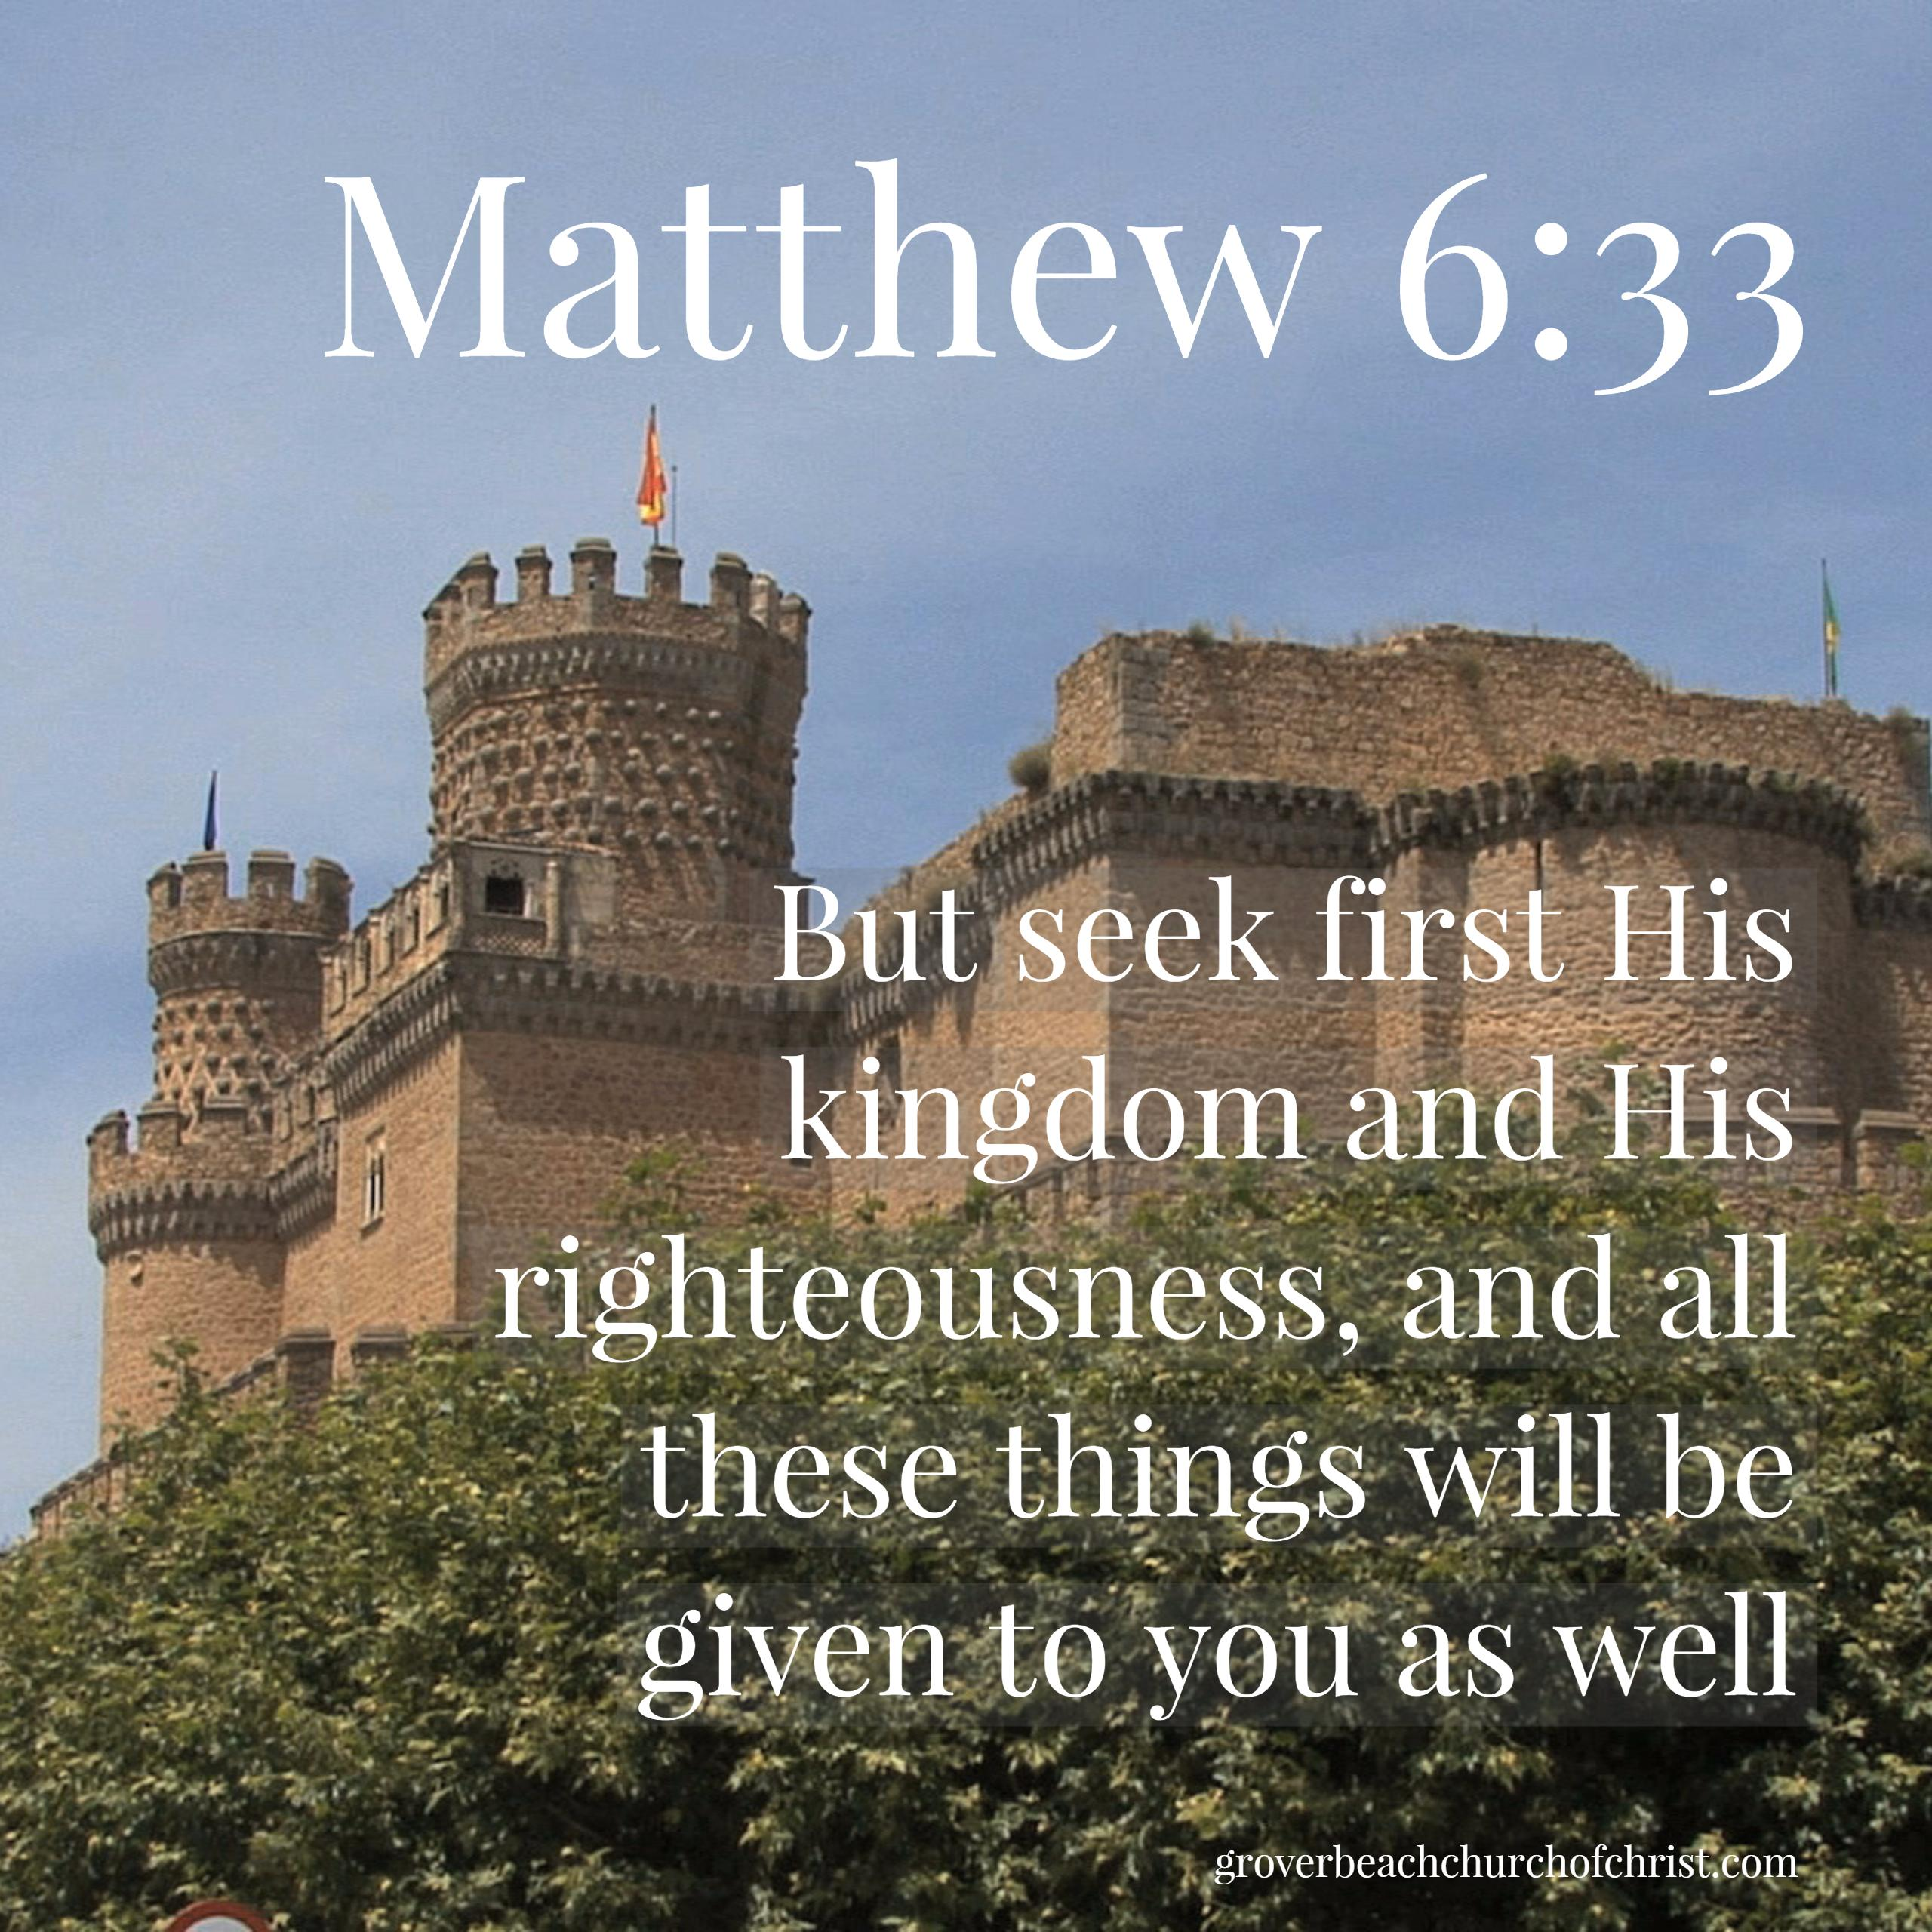 Matthew 6:33 But seek first his kingdom